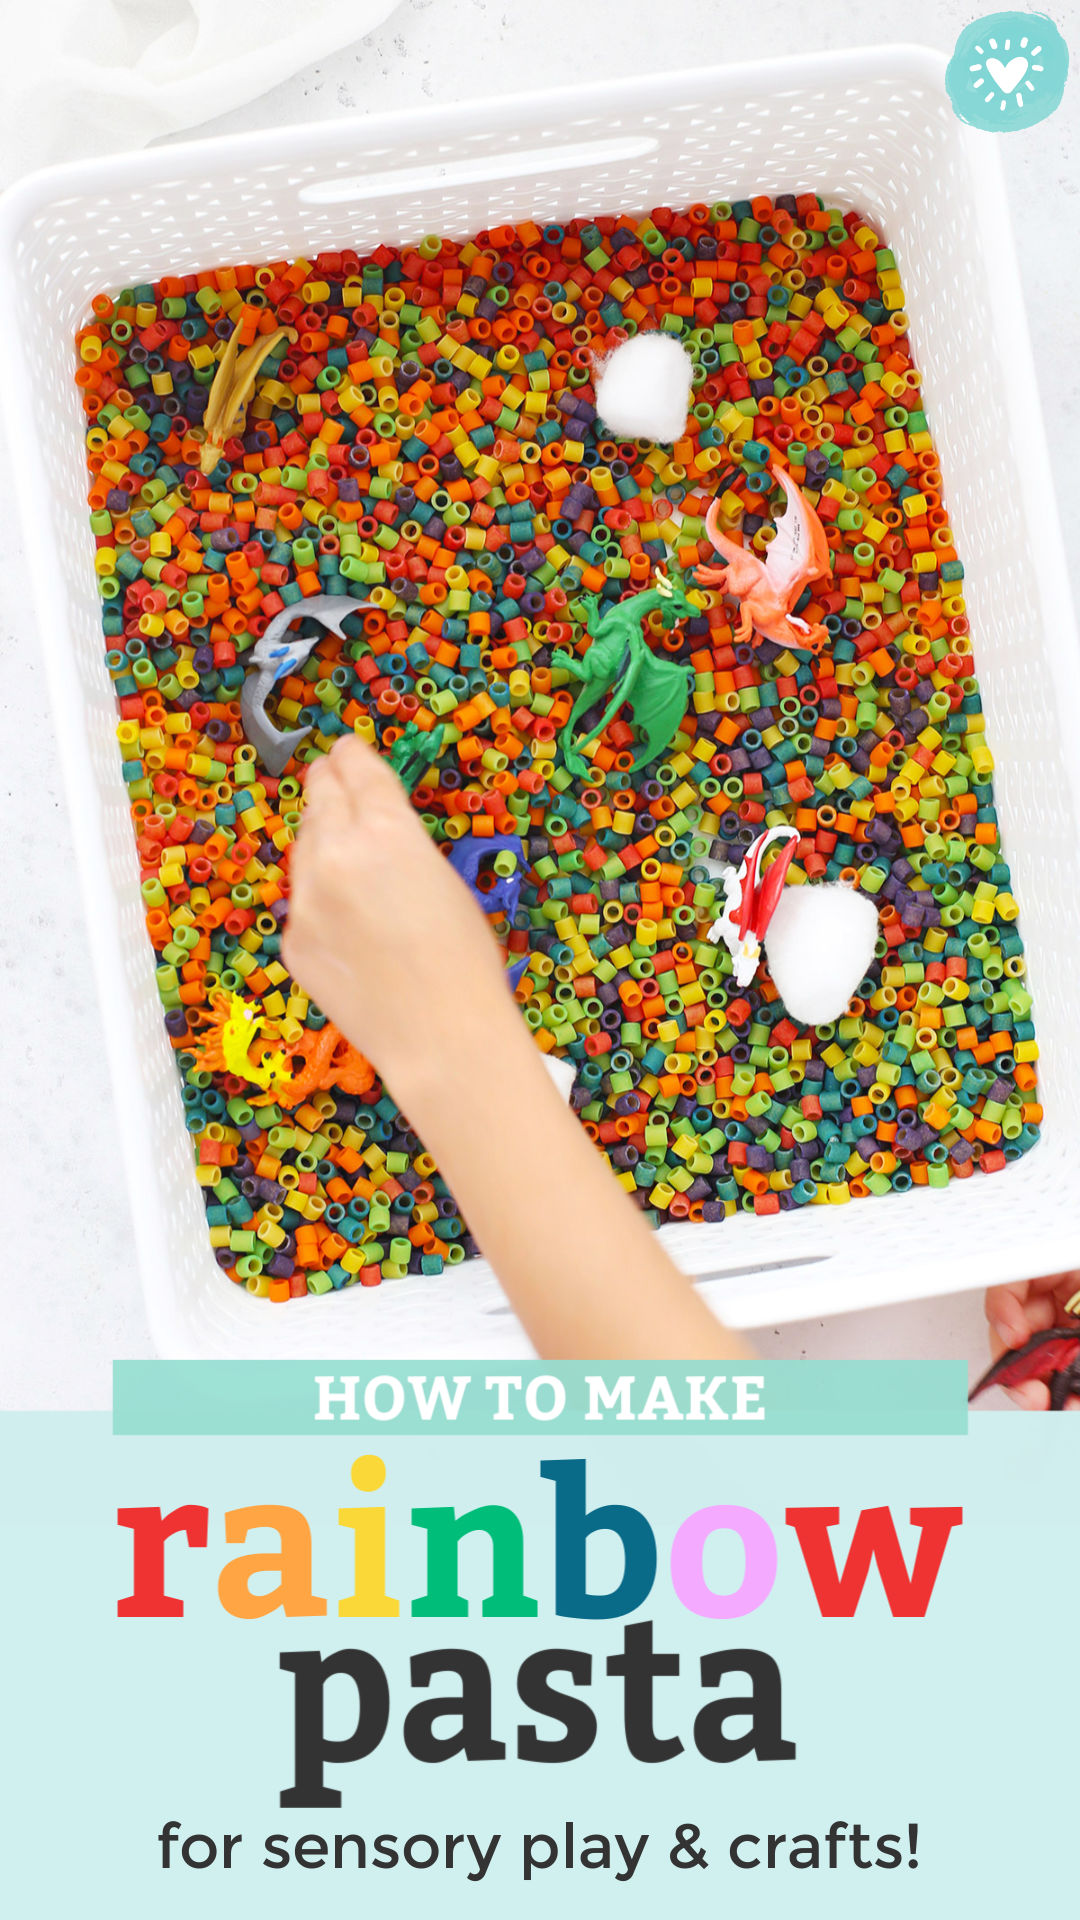 How to Make Rainbow Pasta Tutorial from One Lovely Life